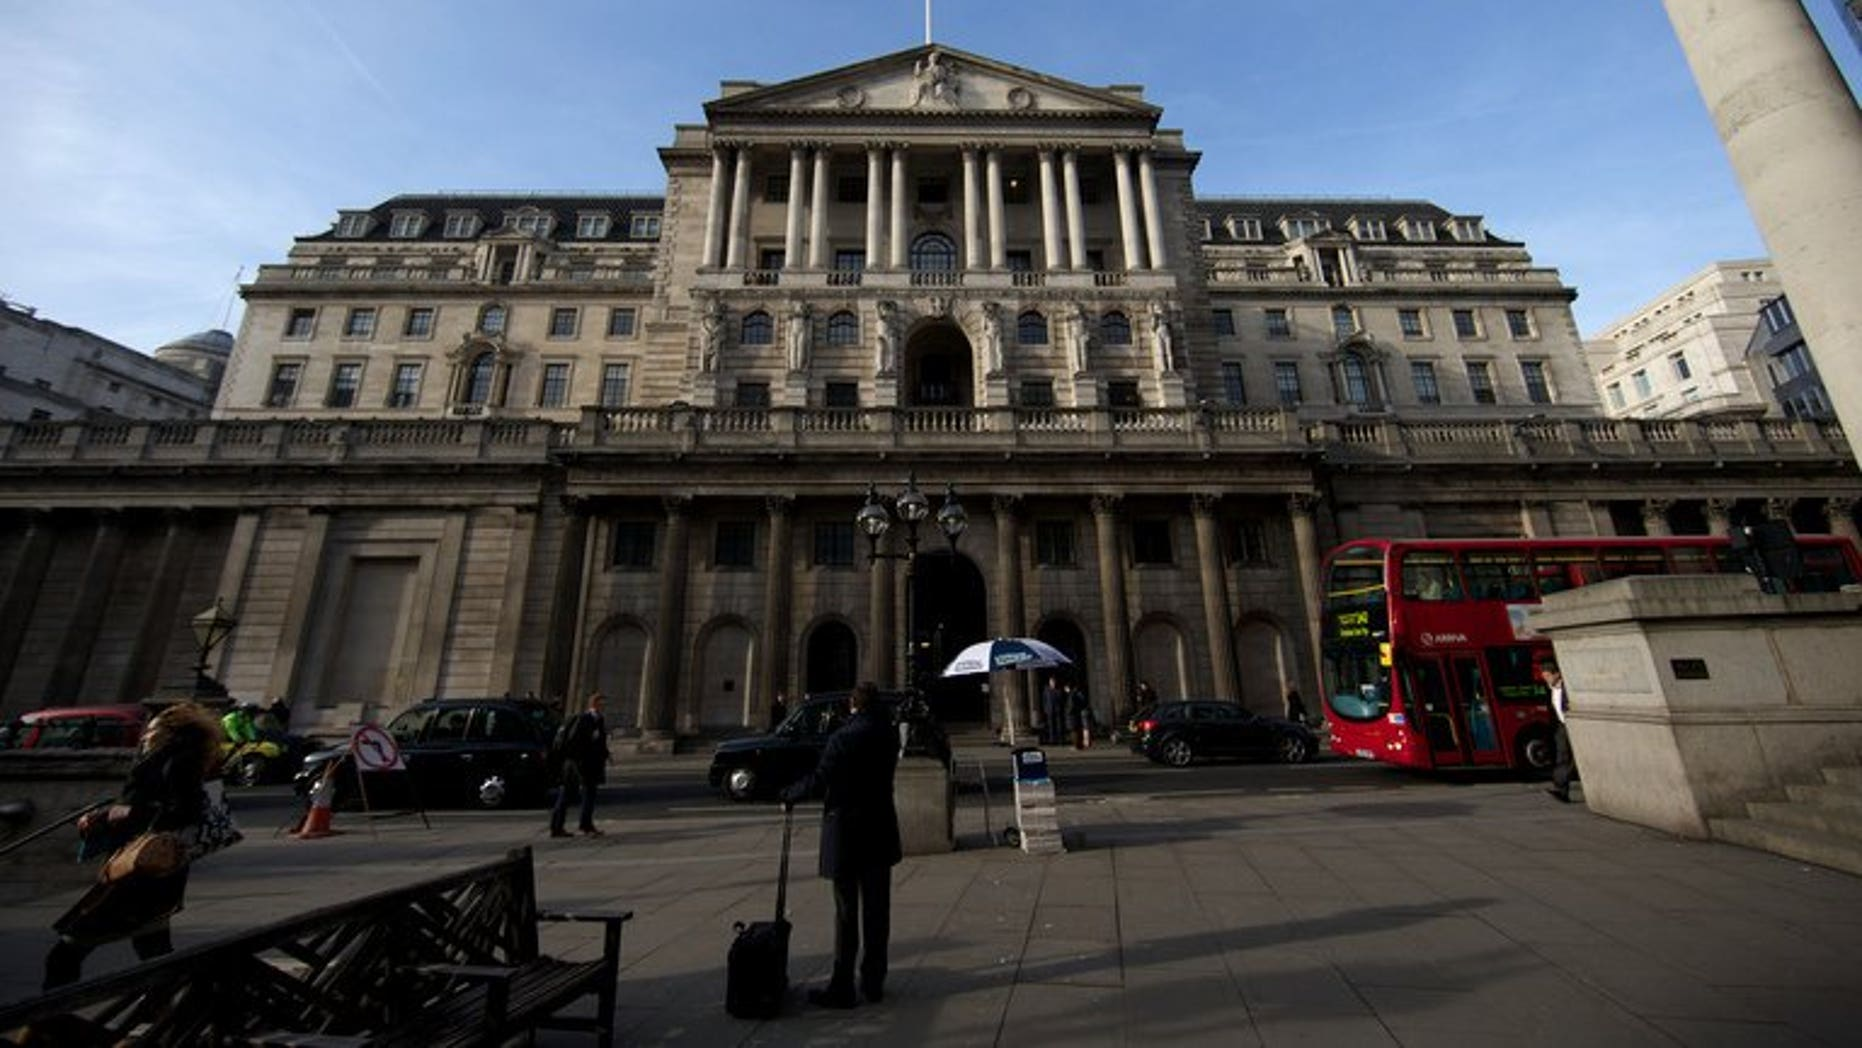 The Bank of England in central London, pictured on February 28, 2013. State borrowing fell last month, official data shows, boosted by profits from the Bank of England's bond-buying economic stimulus programme.